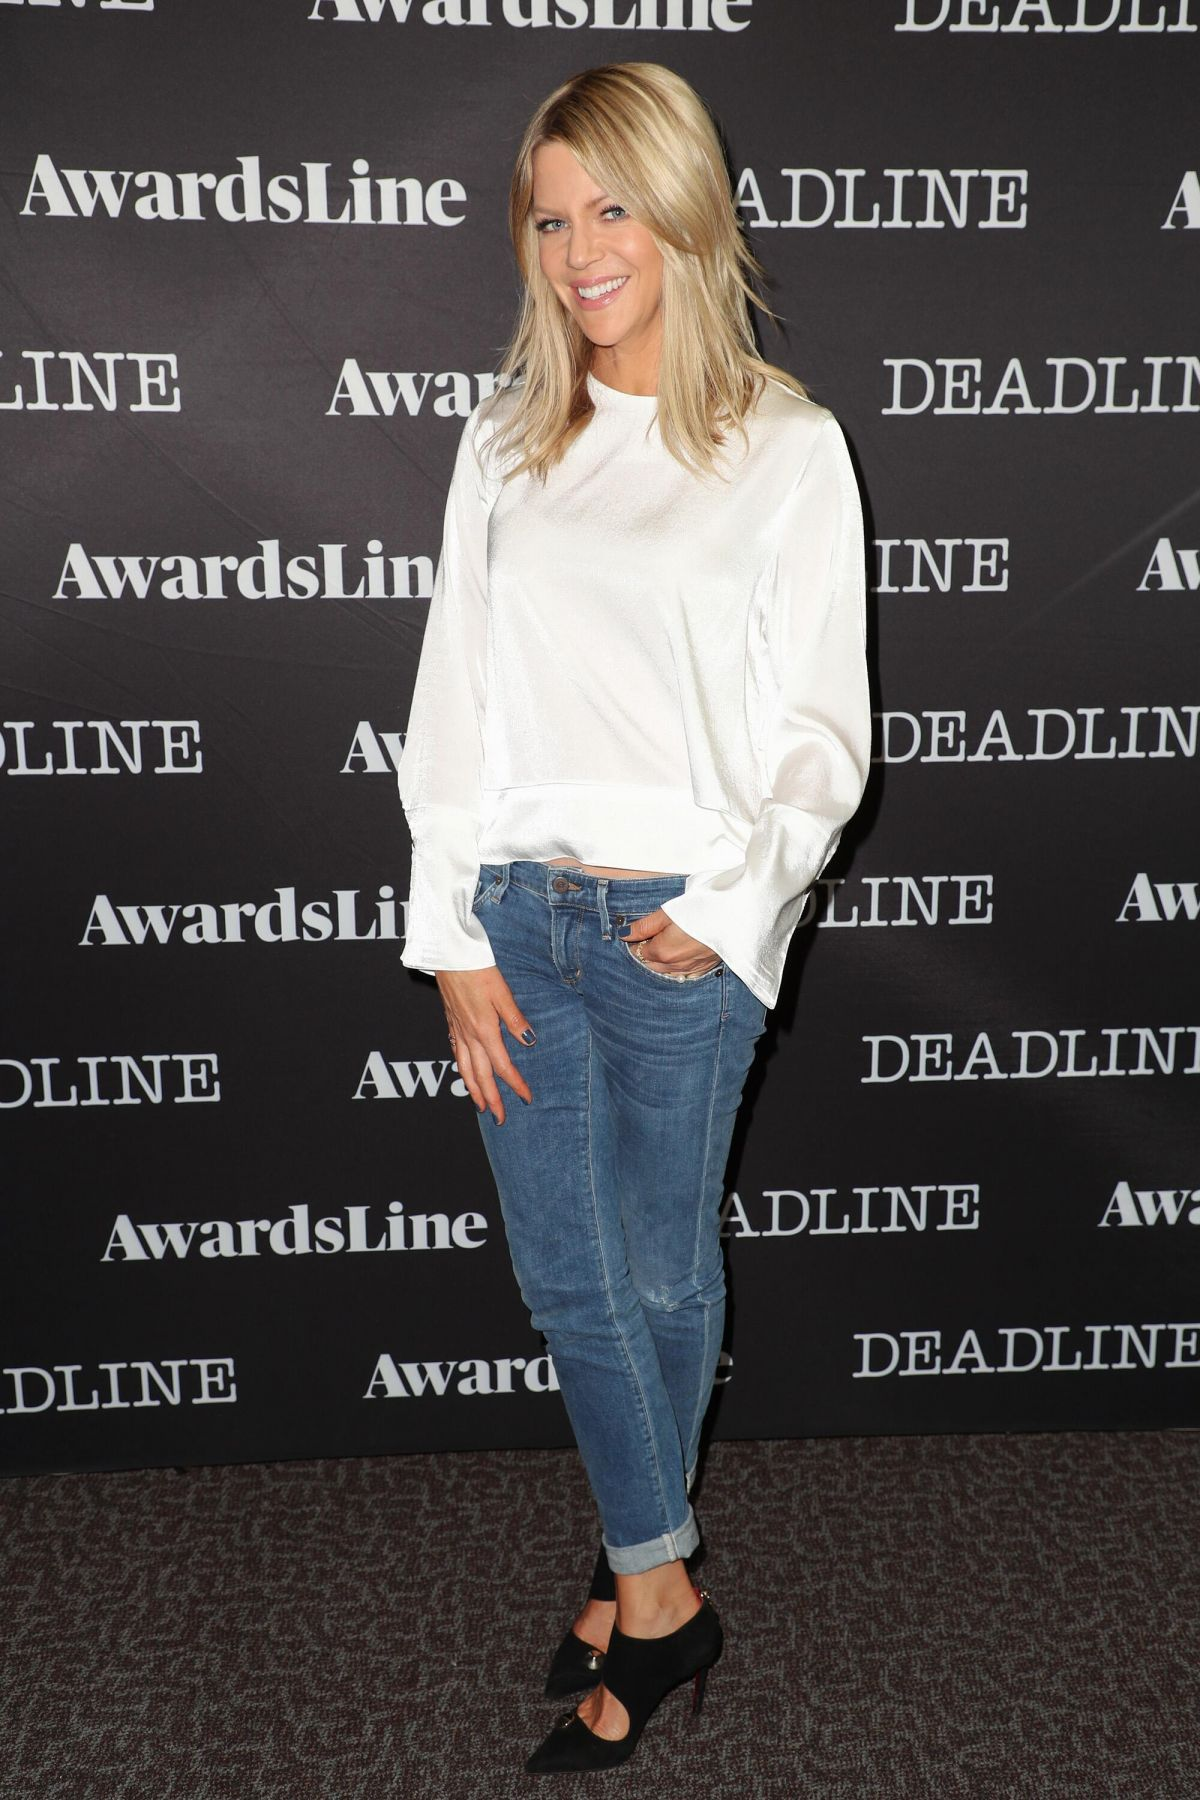 KAITLIN OLSON at Contenders Emmys Presented by Deadline in Los Angeles 04/09/2017